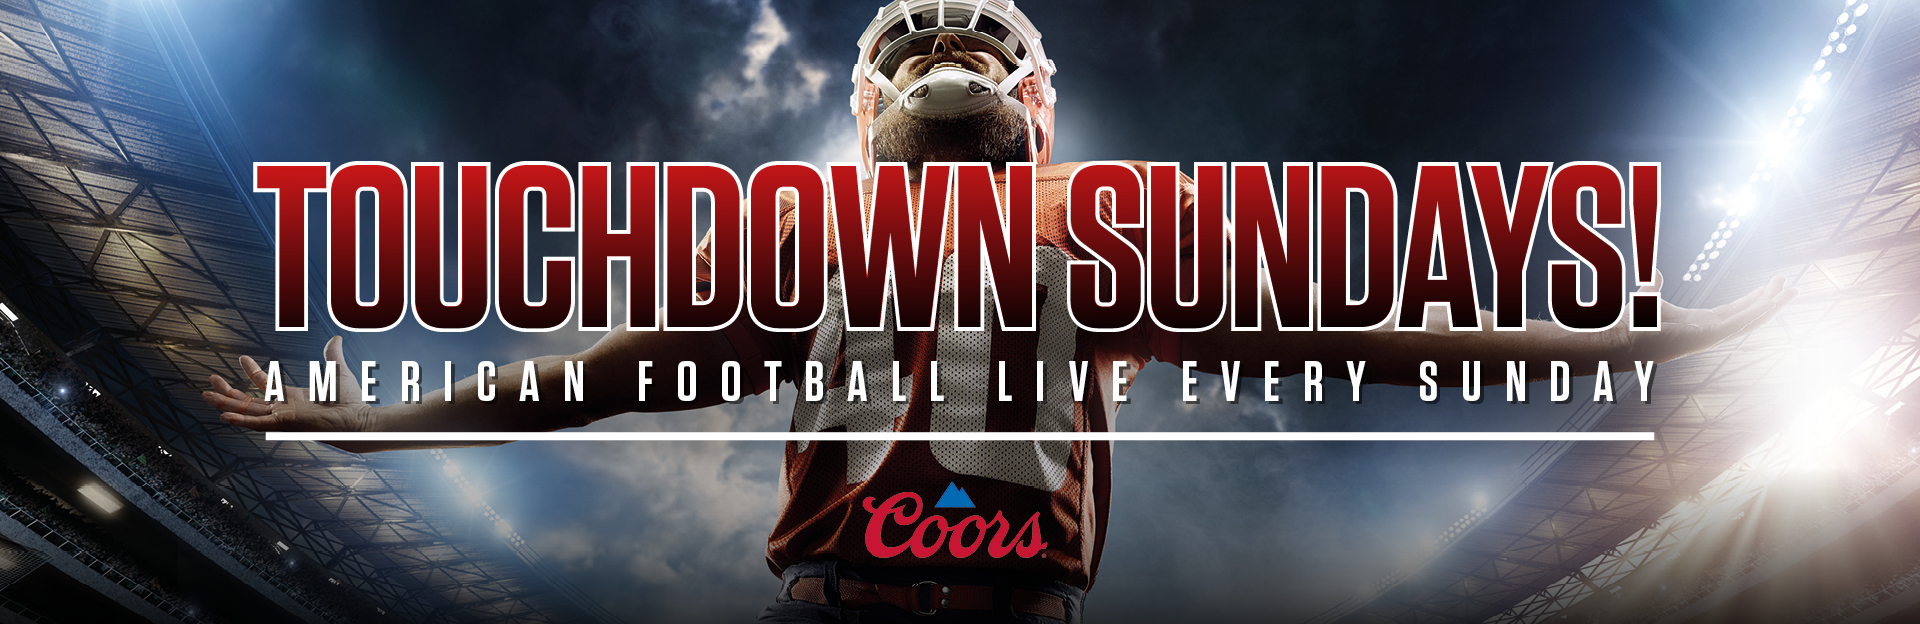 Watch NFL at The Gardeners Arms